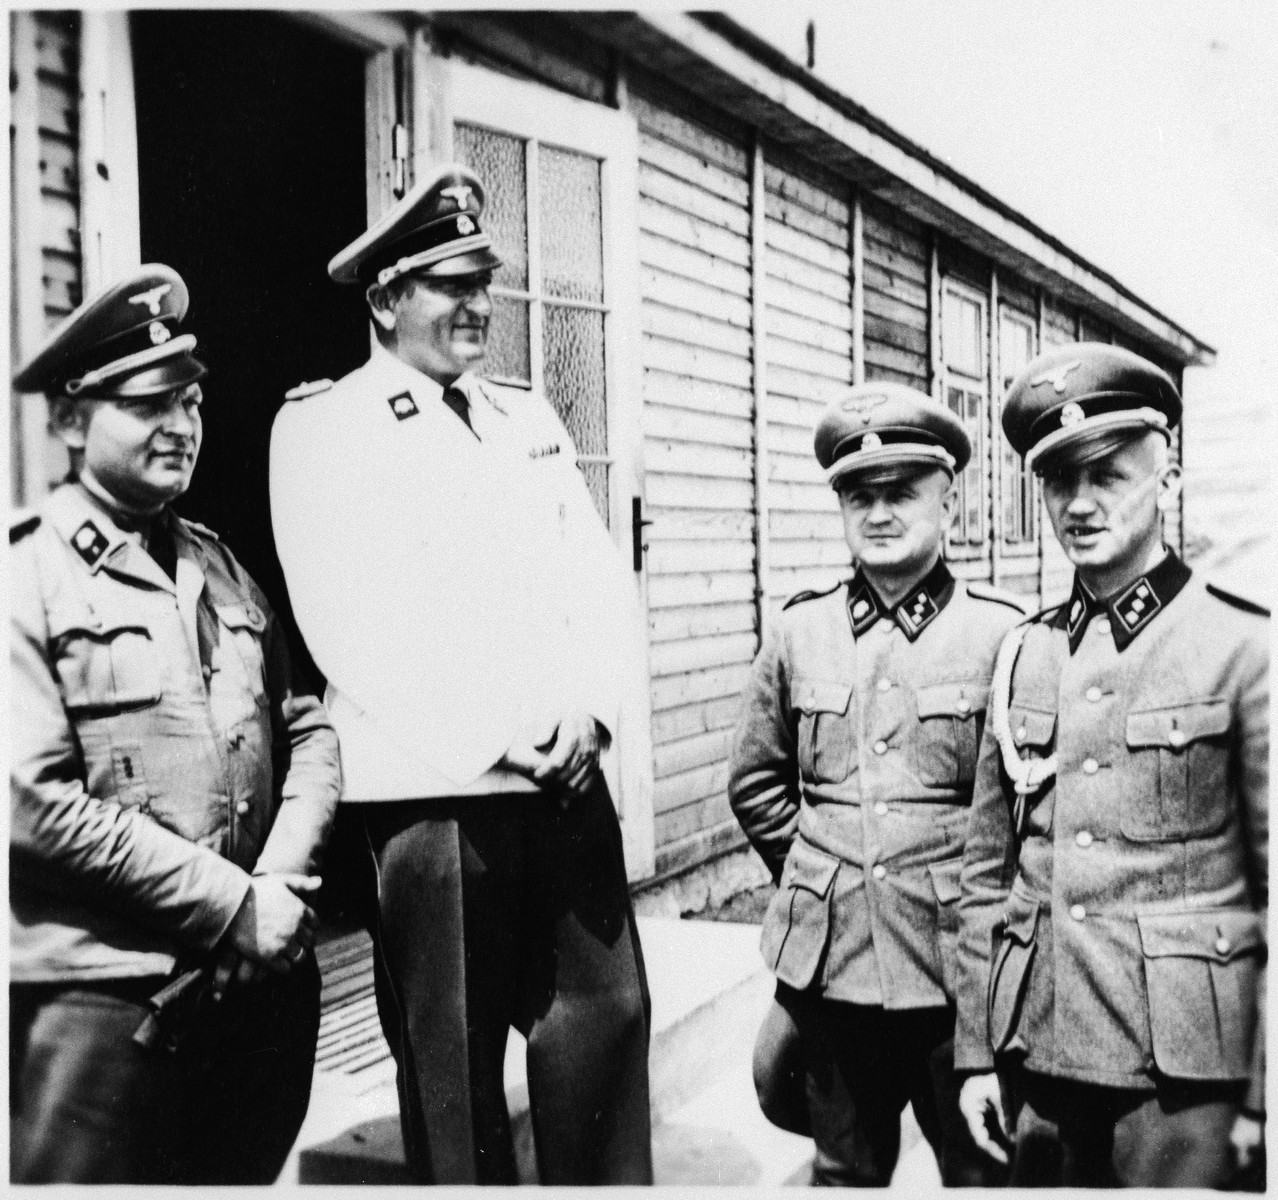 Four SS men stand outside a building in the Gross Rosen concentration camp.  The commandant Arthur Roedl is second from the left.  His adjutant, Kuno Schramm is pictured on the right.  On the left is probably Hermann Michl, head of administration.